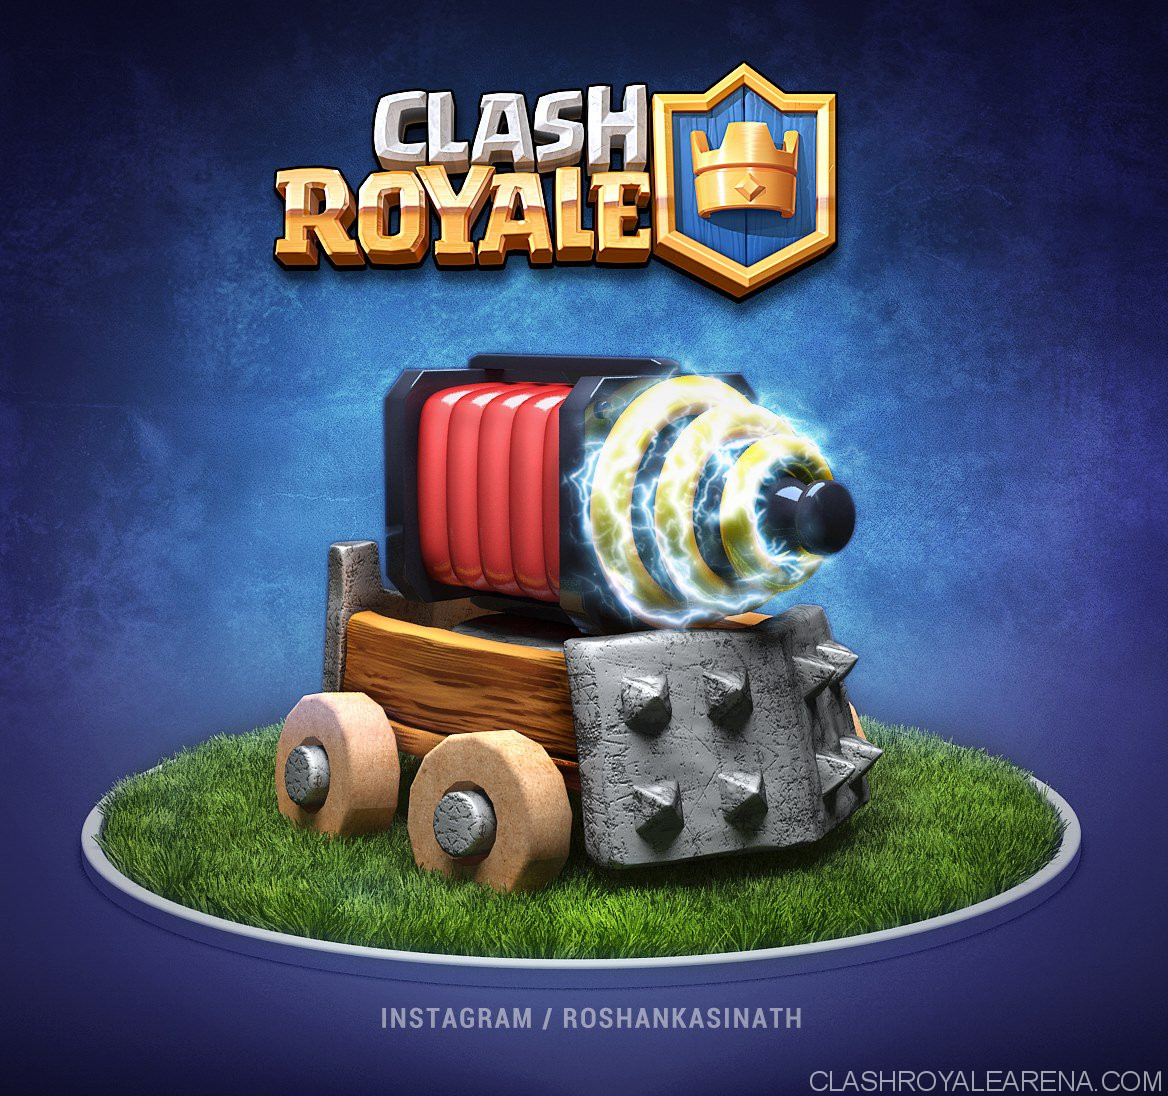 Minions Hd Wallpapers 1080p Clash Royale Wallpaper Collection Clash Royale Guides